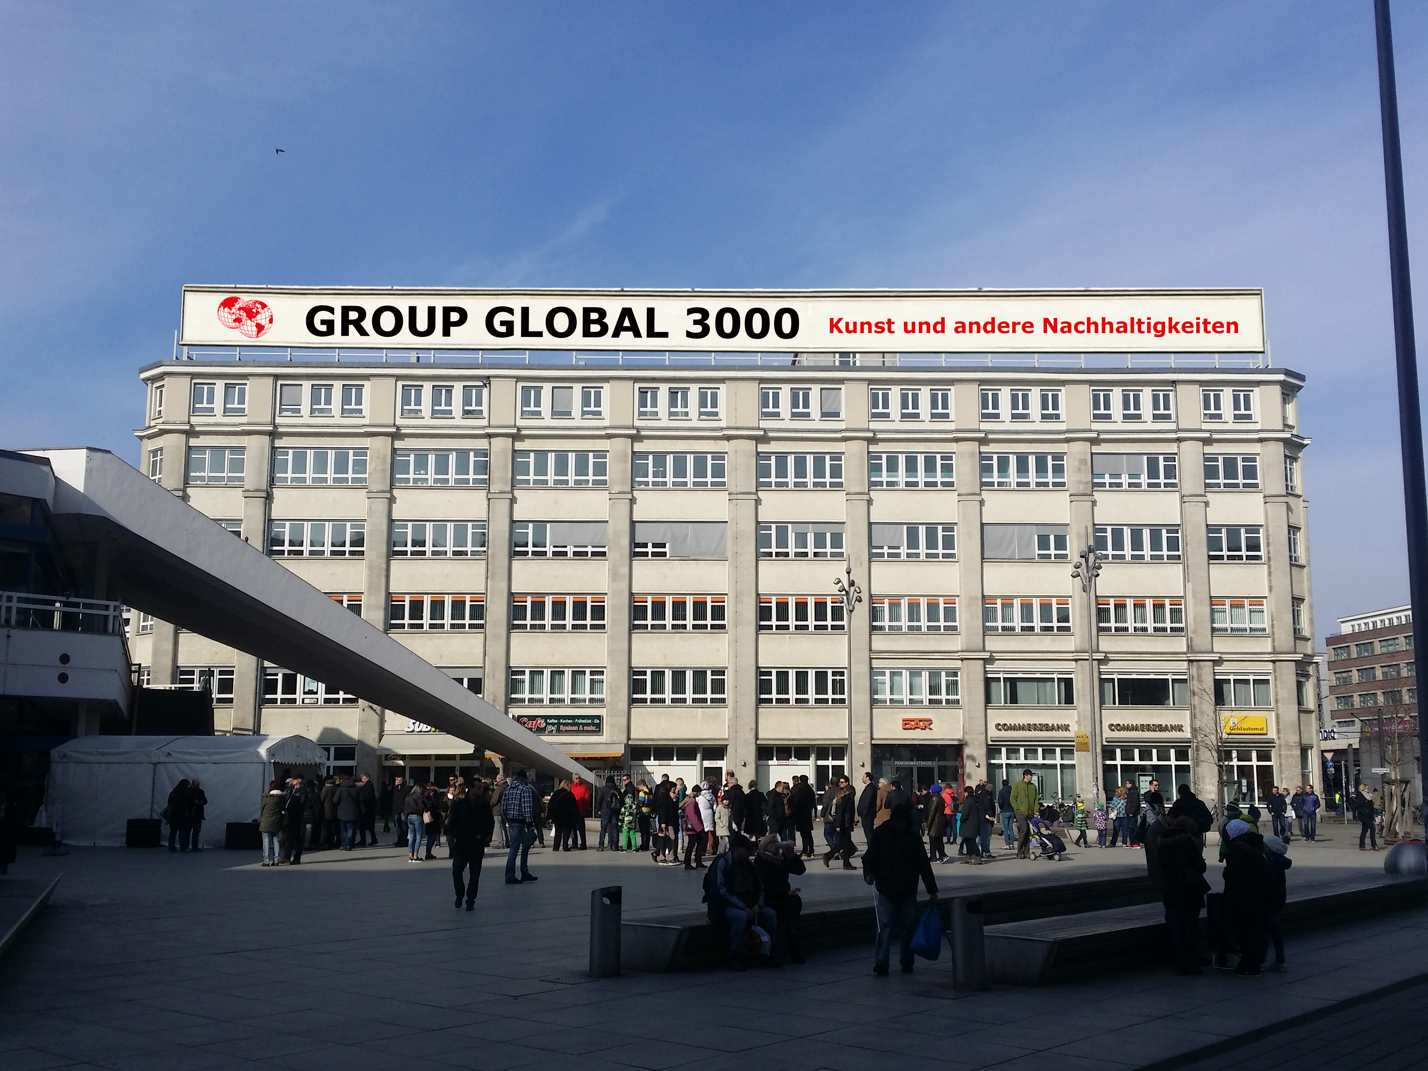 Group Gobal 3000 at Alexanderplatz